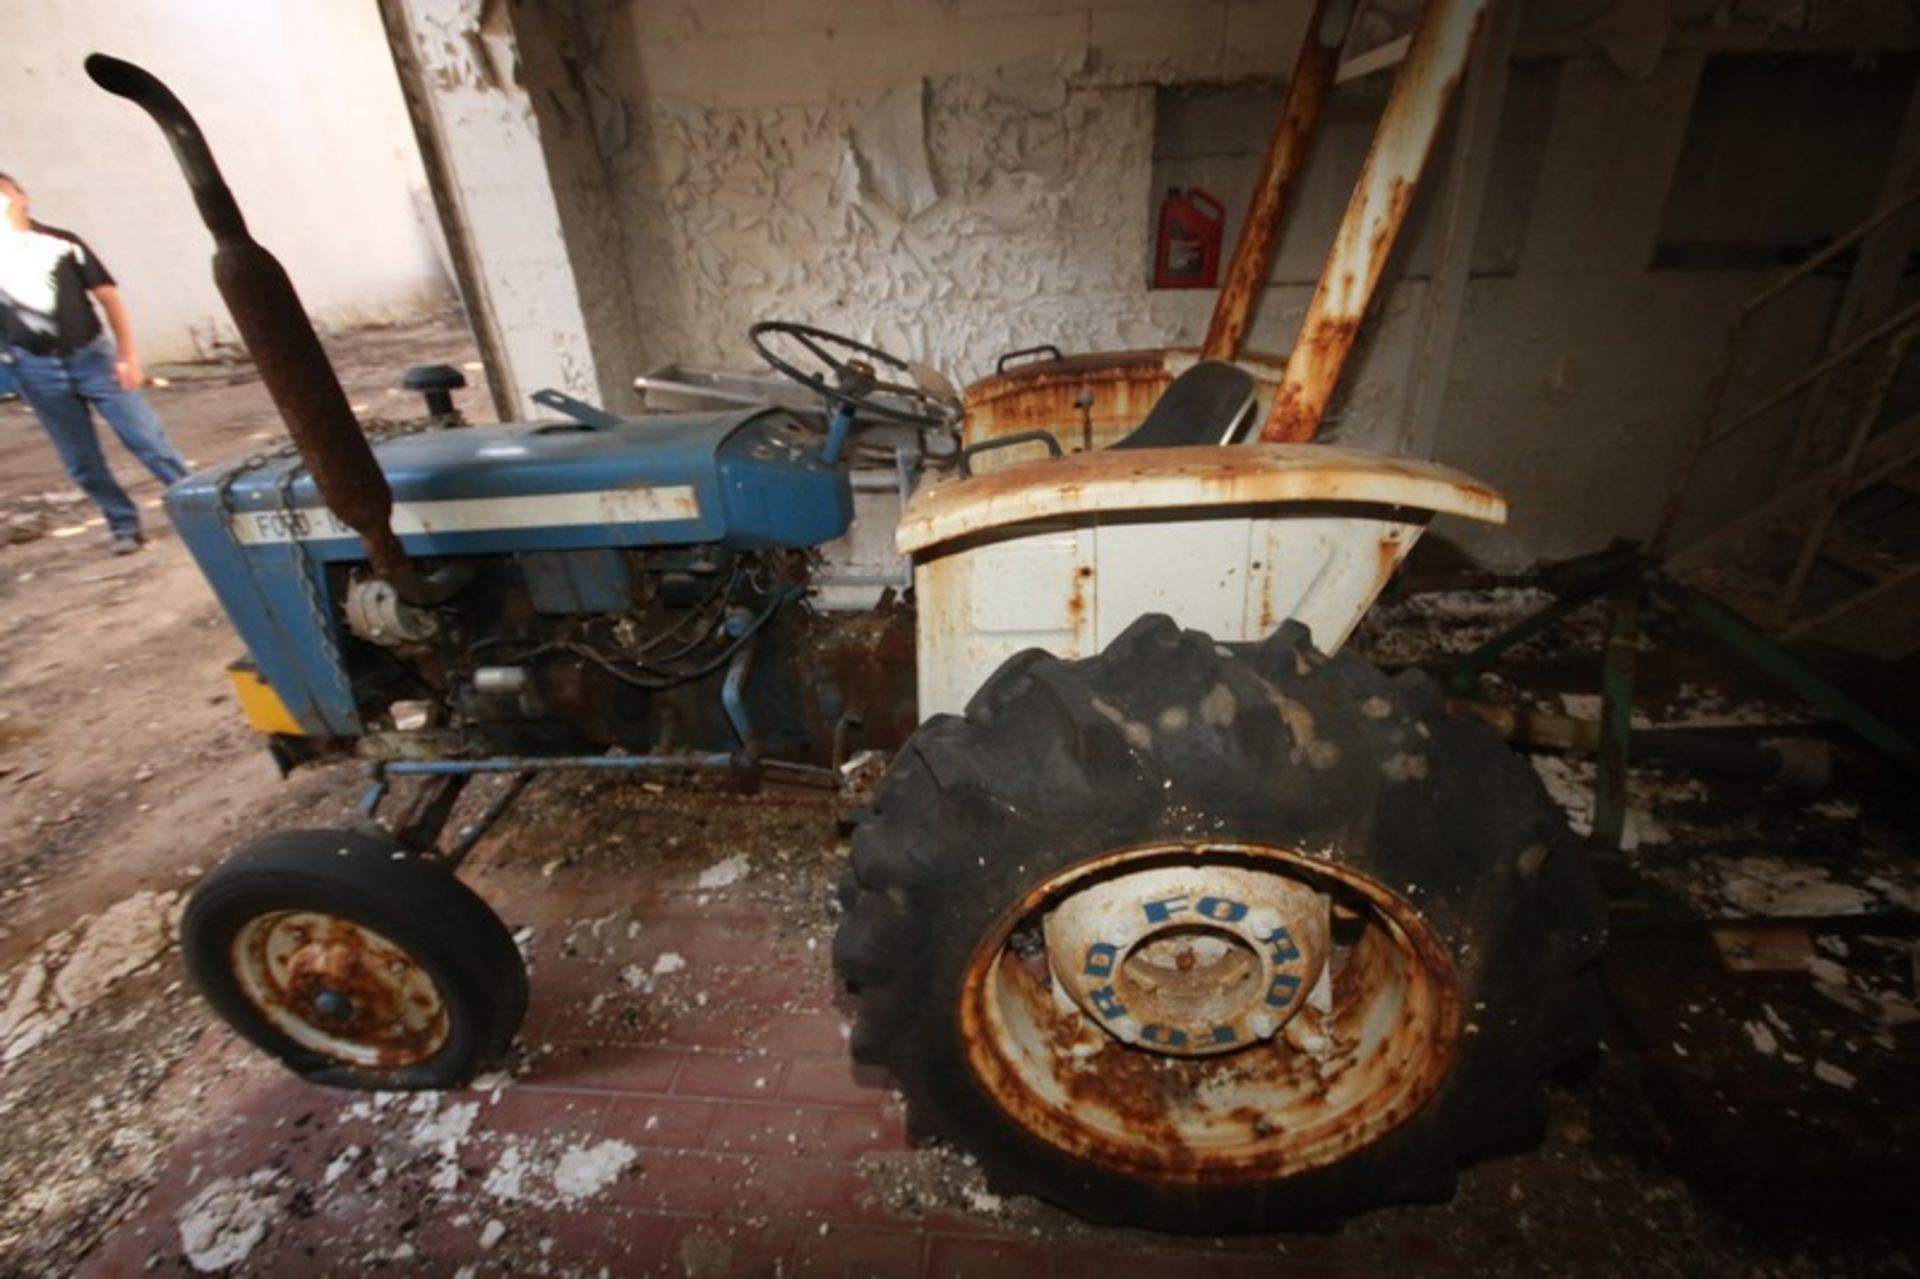 Ford 1000 Tractor with Rear Mower Attachment (LOCATED IN Muenster, TX) - Image 2 of 6